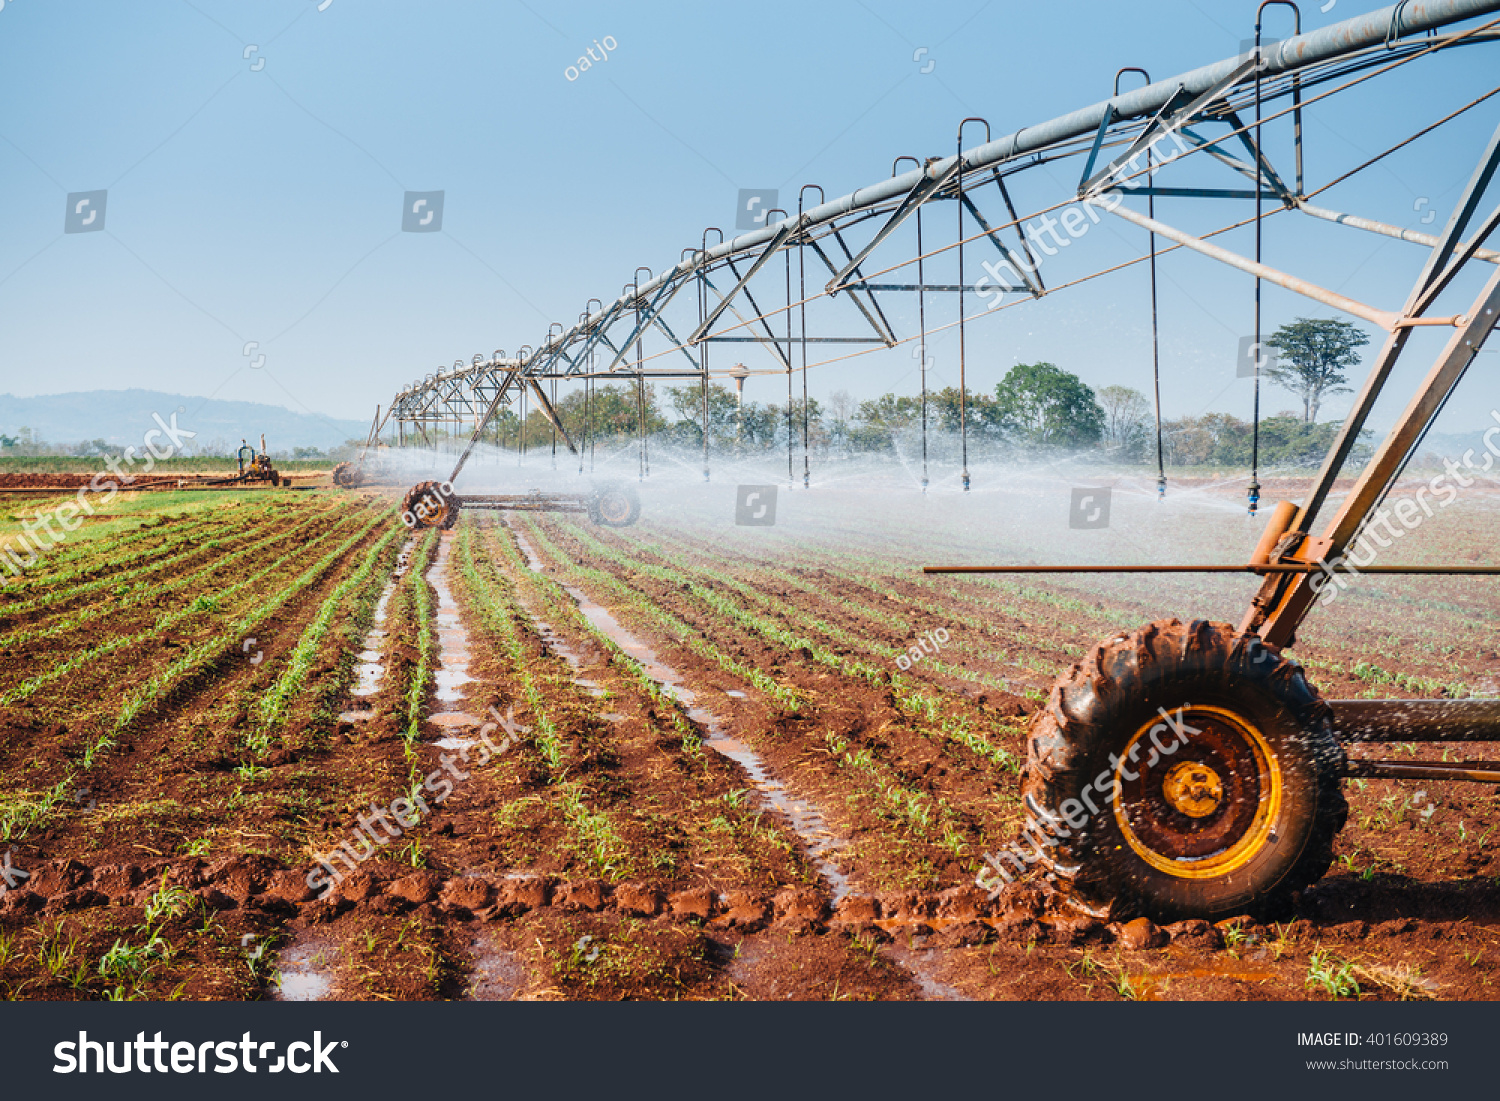 Center pivot sprinkler system watering corn shoots in a corn field